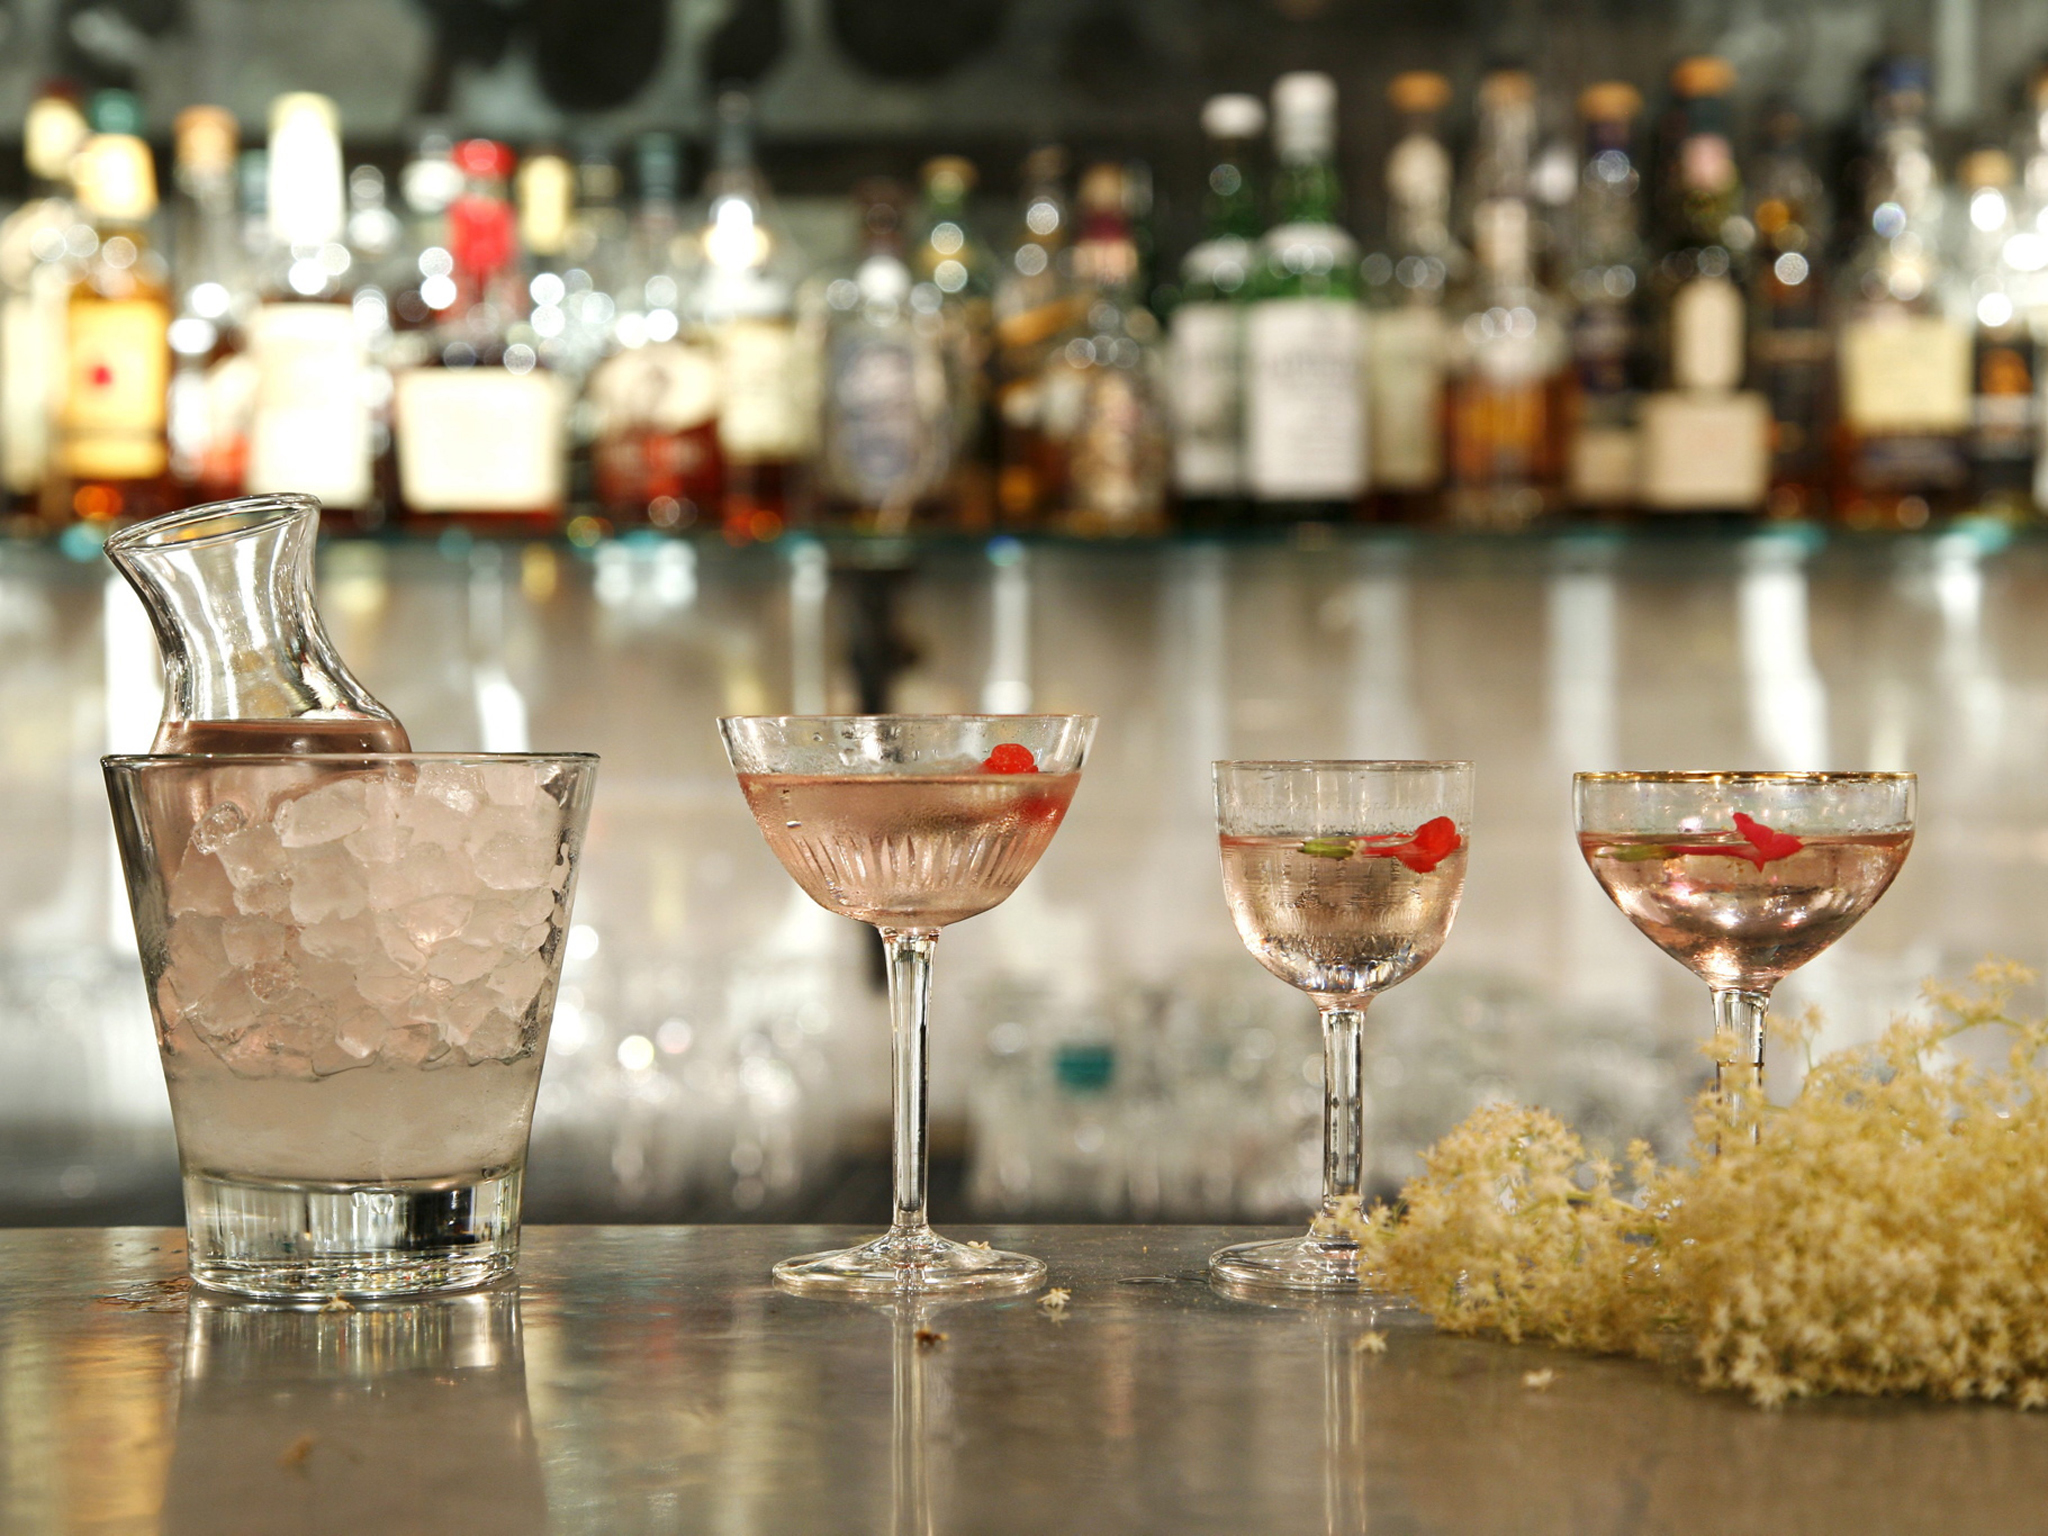 The 100 best bars and pubs in London - Mark's Bar, Soho